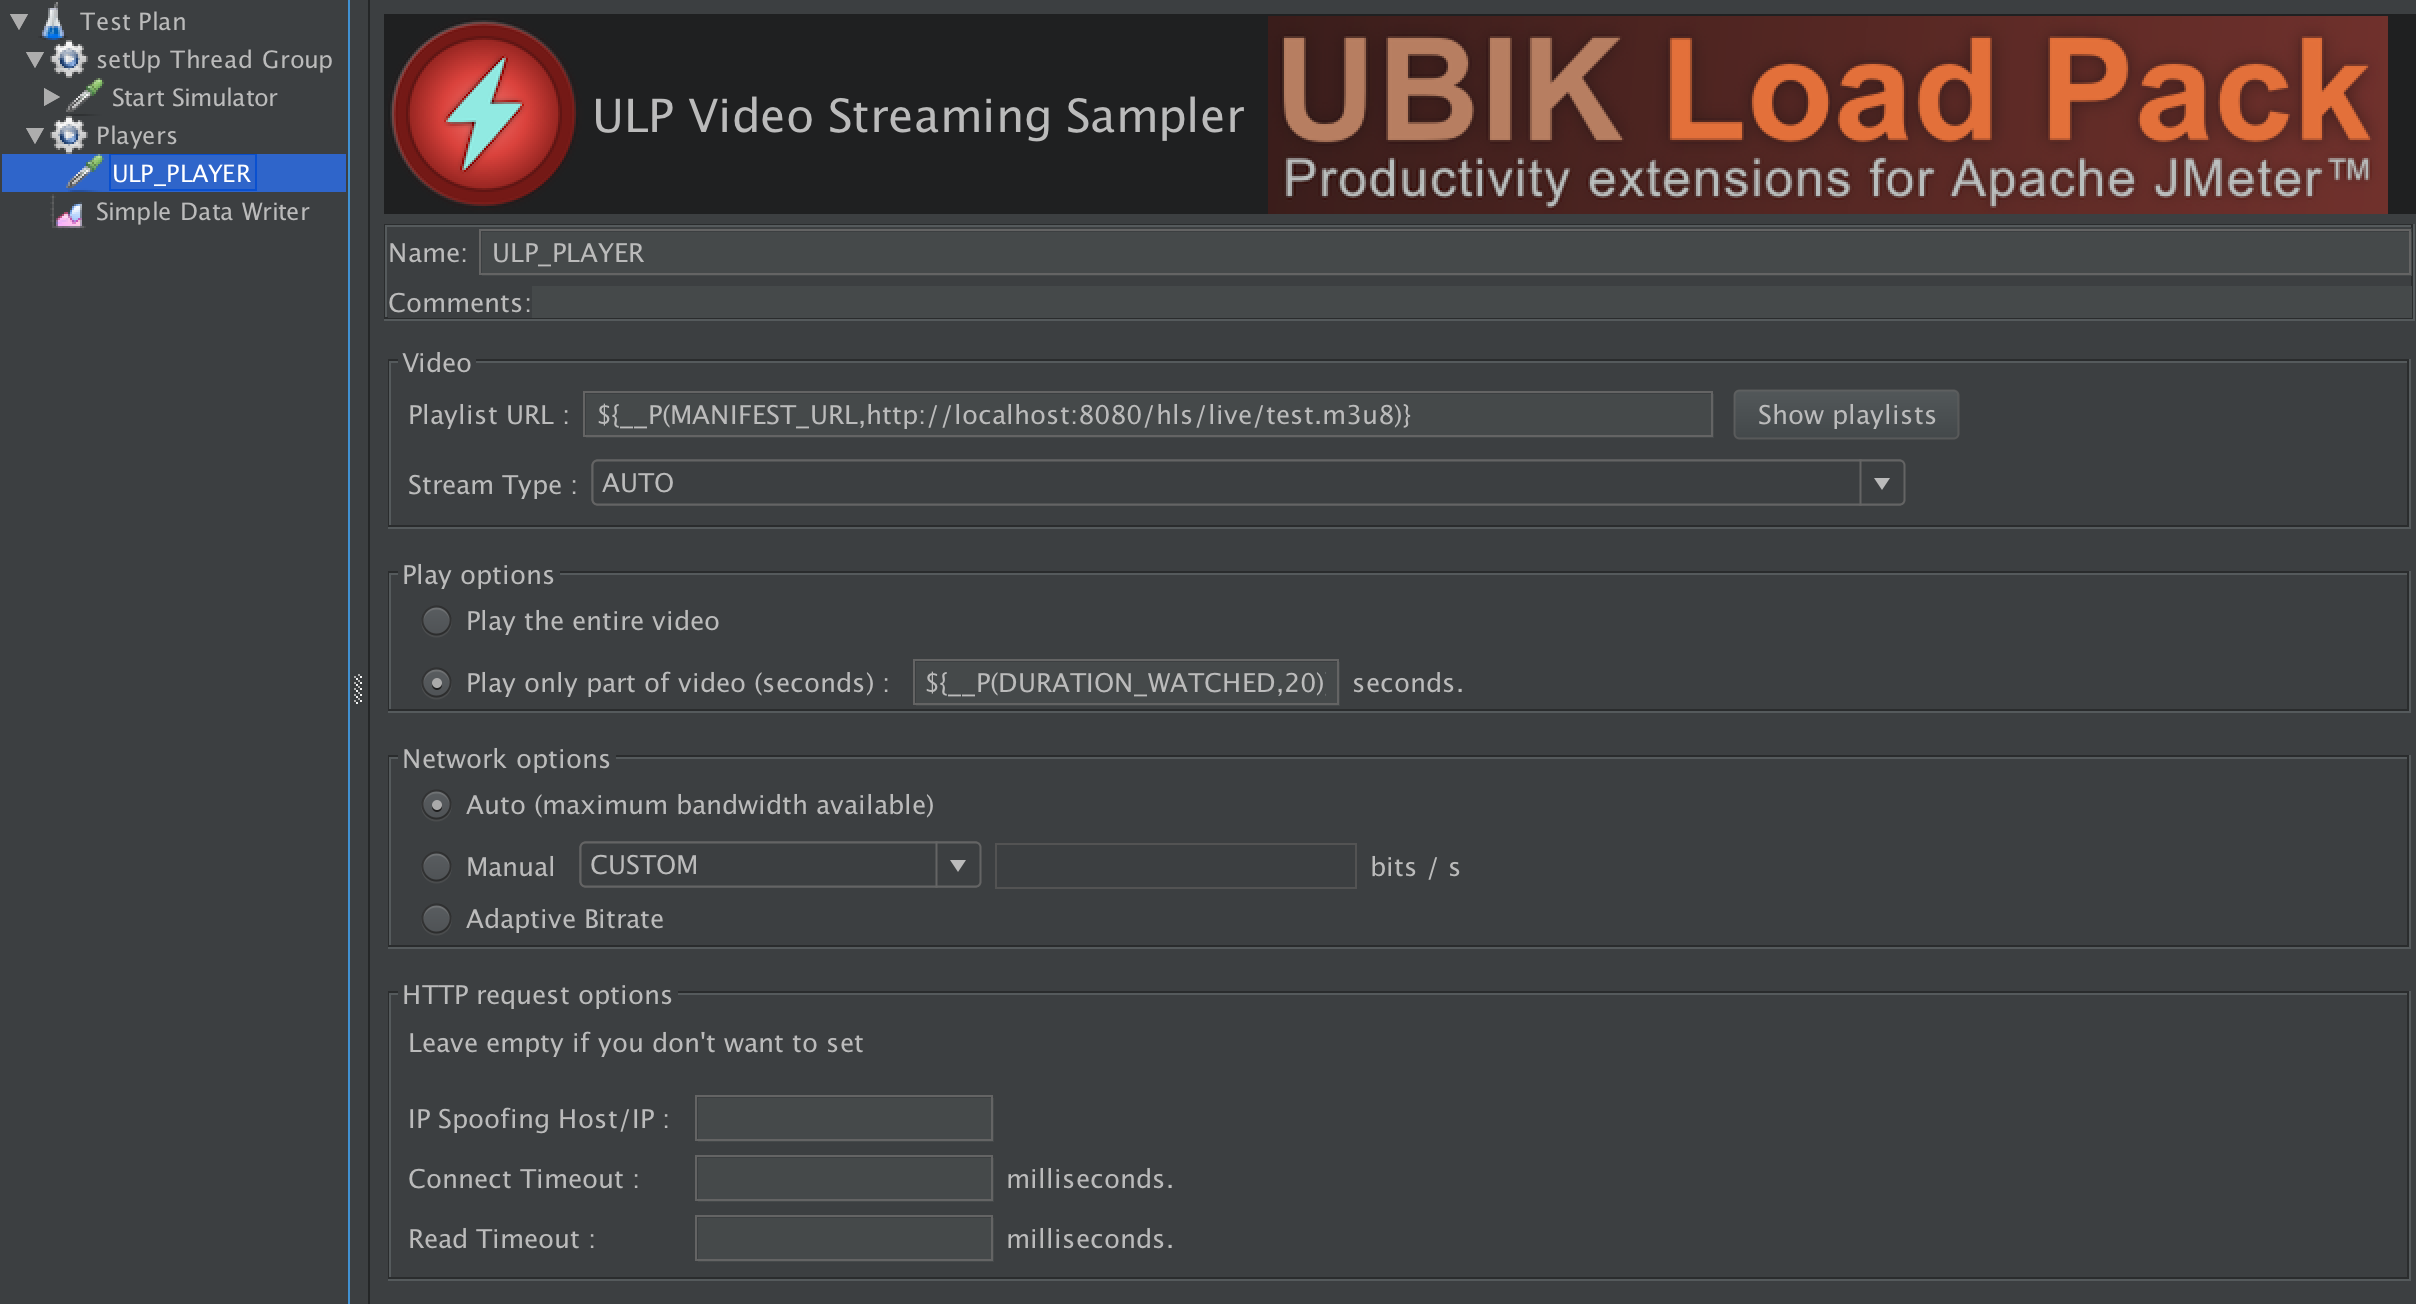 Running Video Streaming Load Test with Taurus, JMeter and